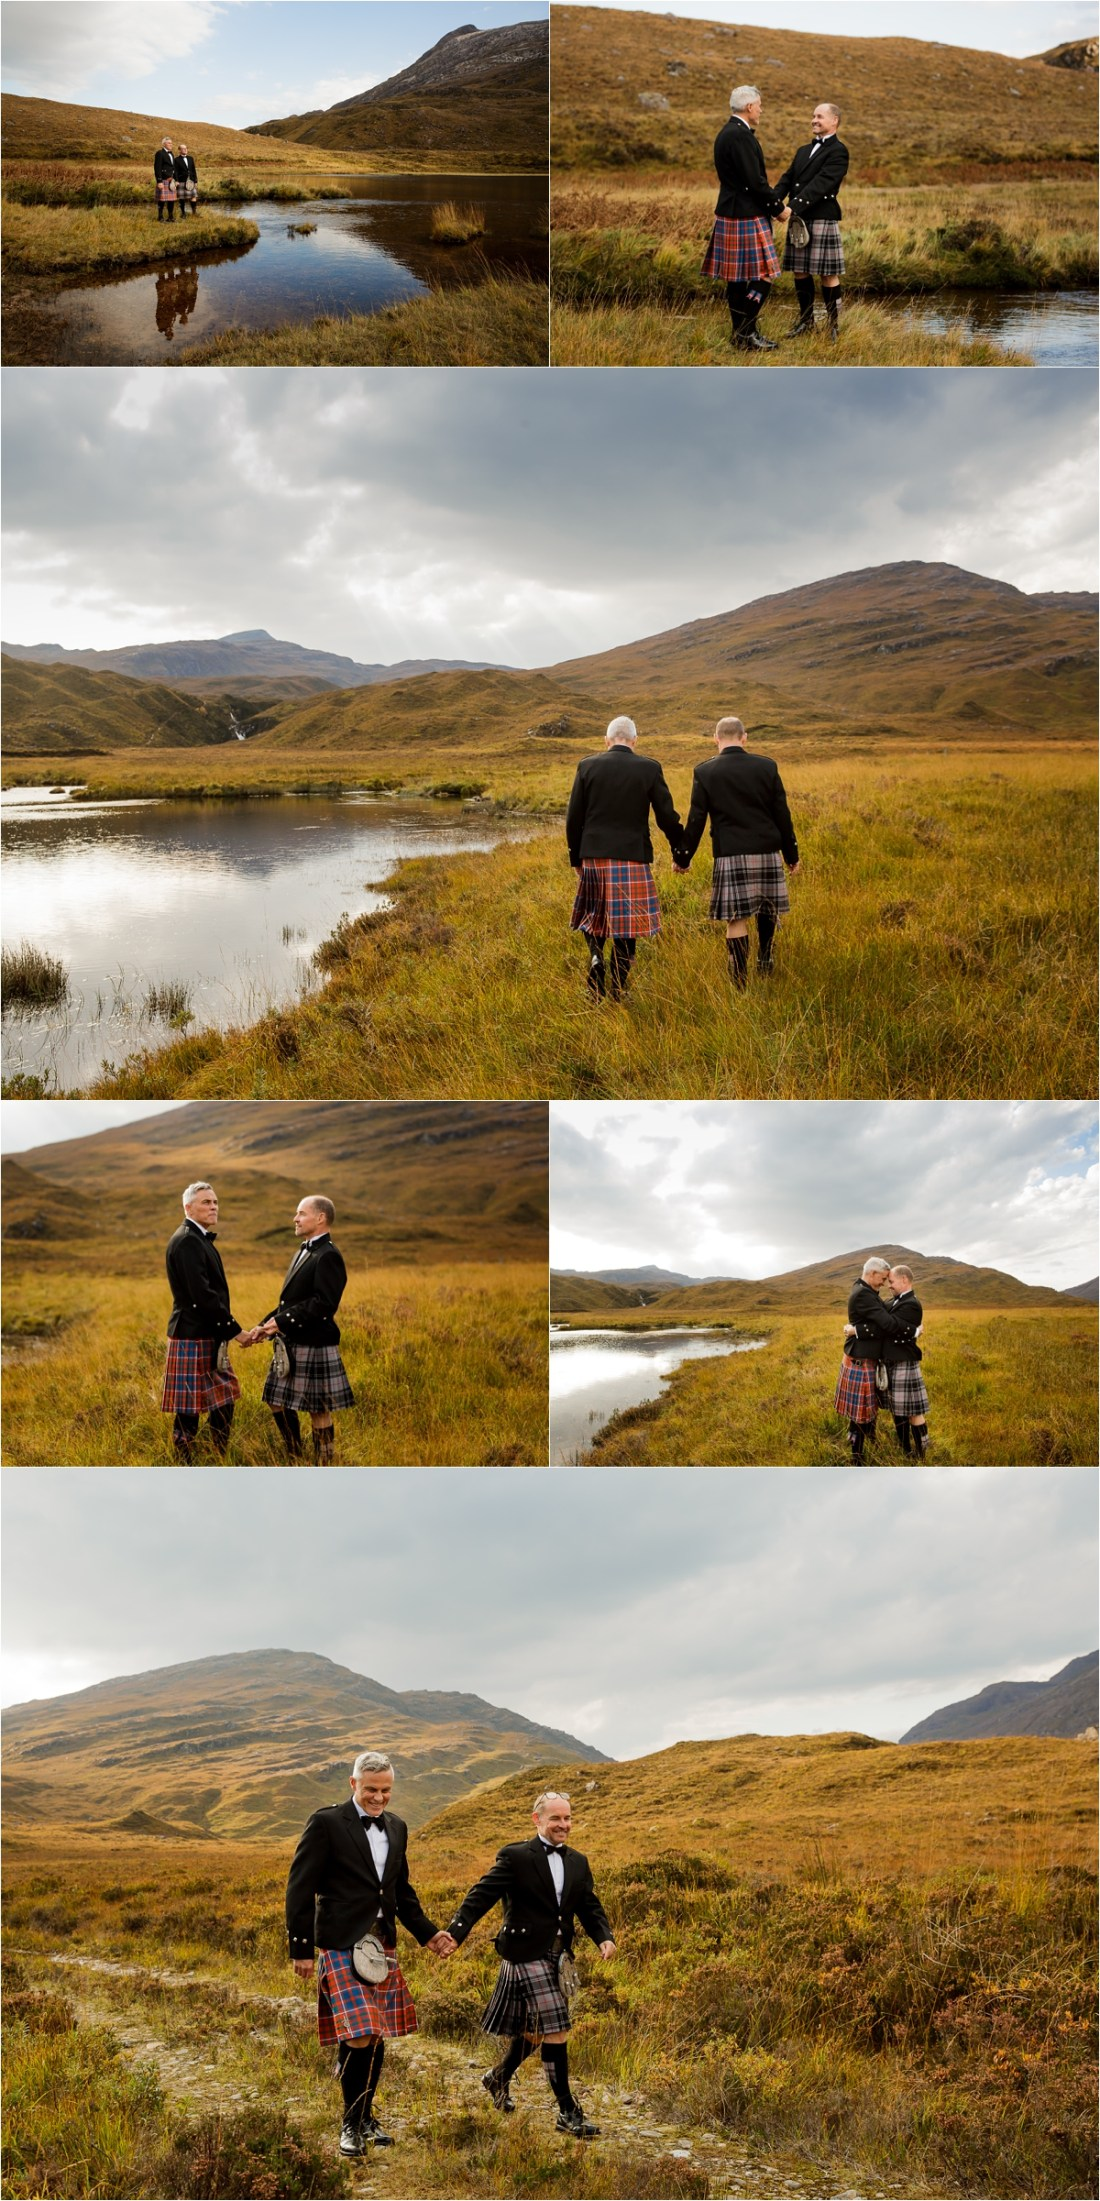 The two grooms walk along the side of the lake in Scotland by Lynne Kennedy Photography